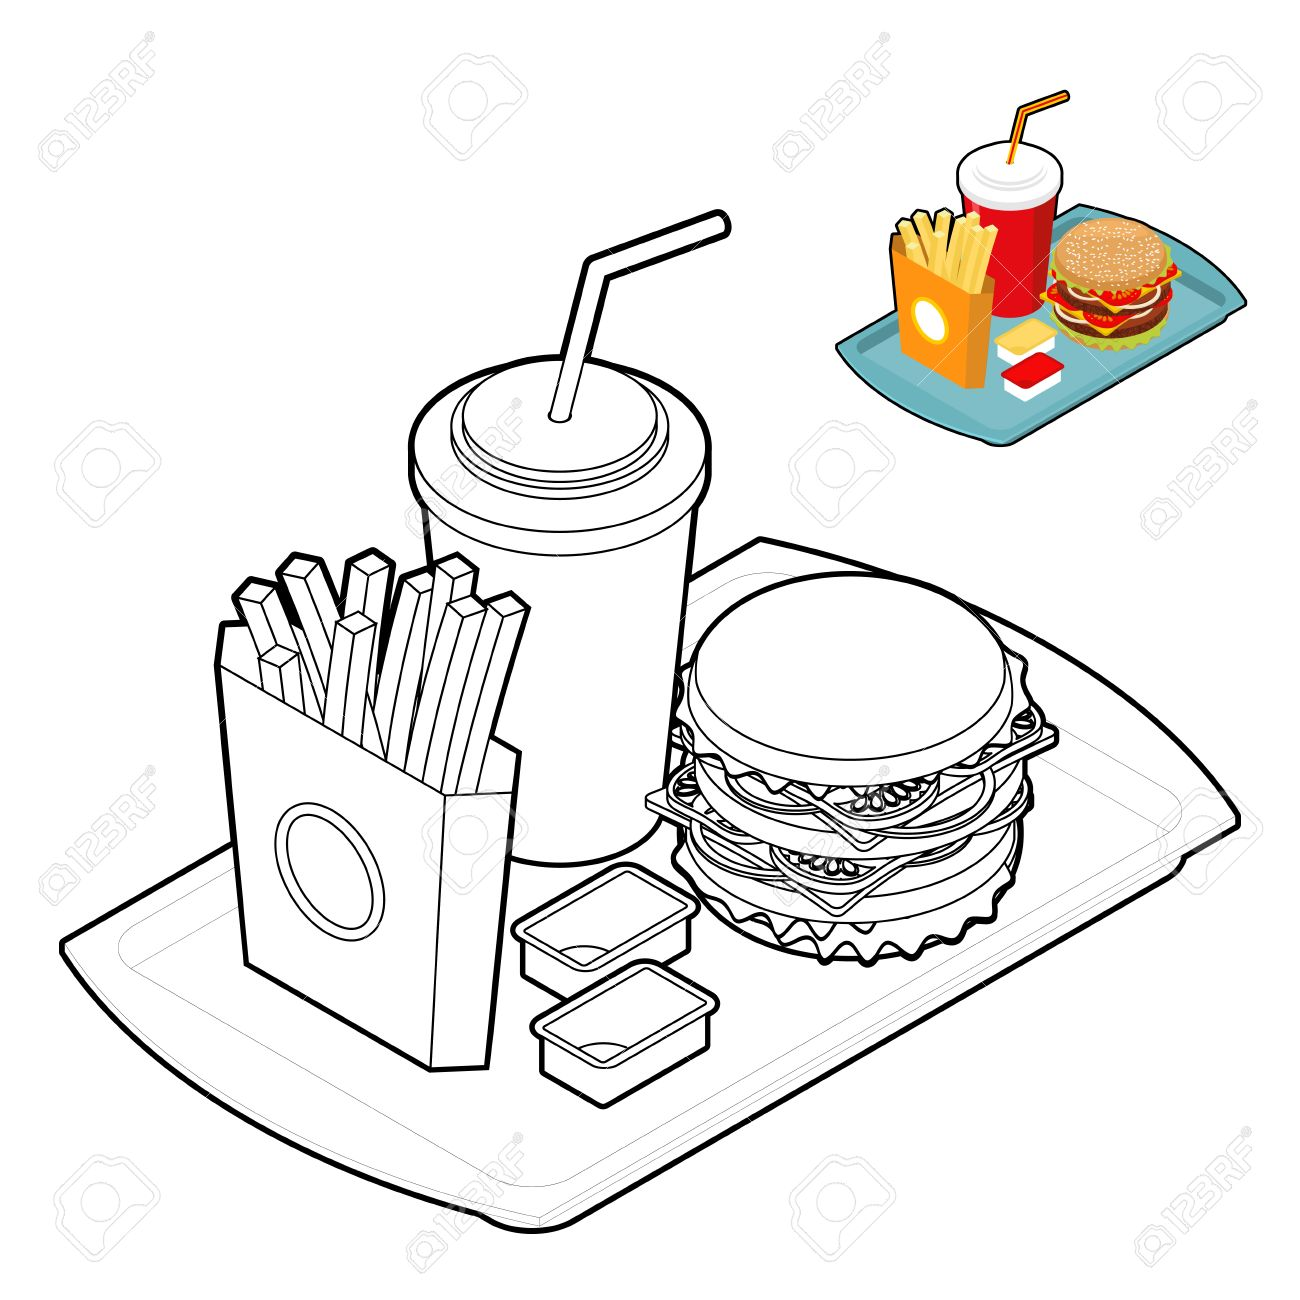 Fast Food Coloring Book. Food In Linear Style. Big Fresh Hamburger ...